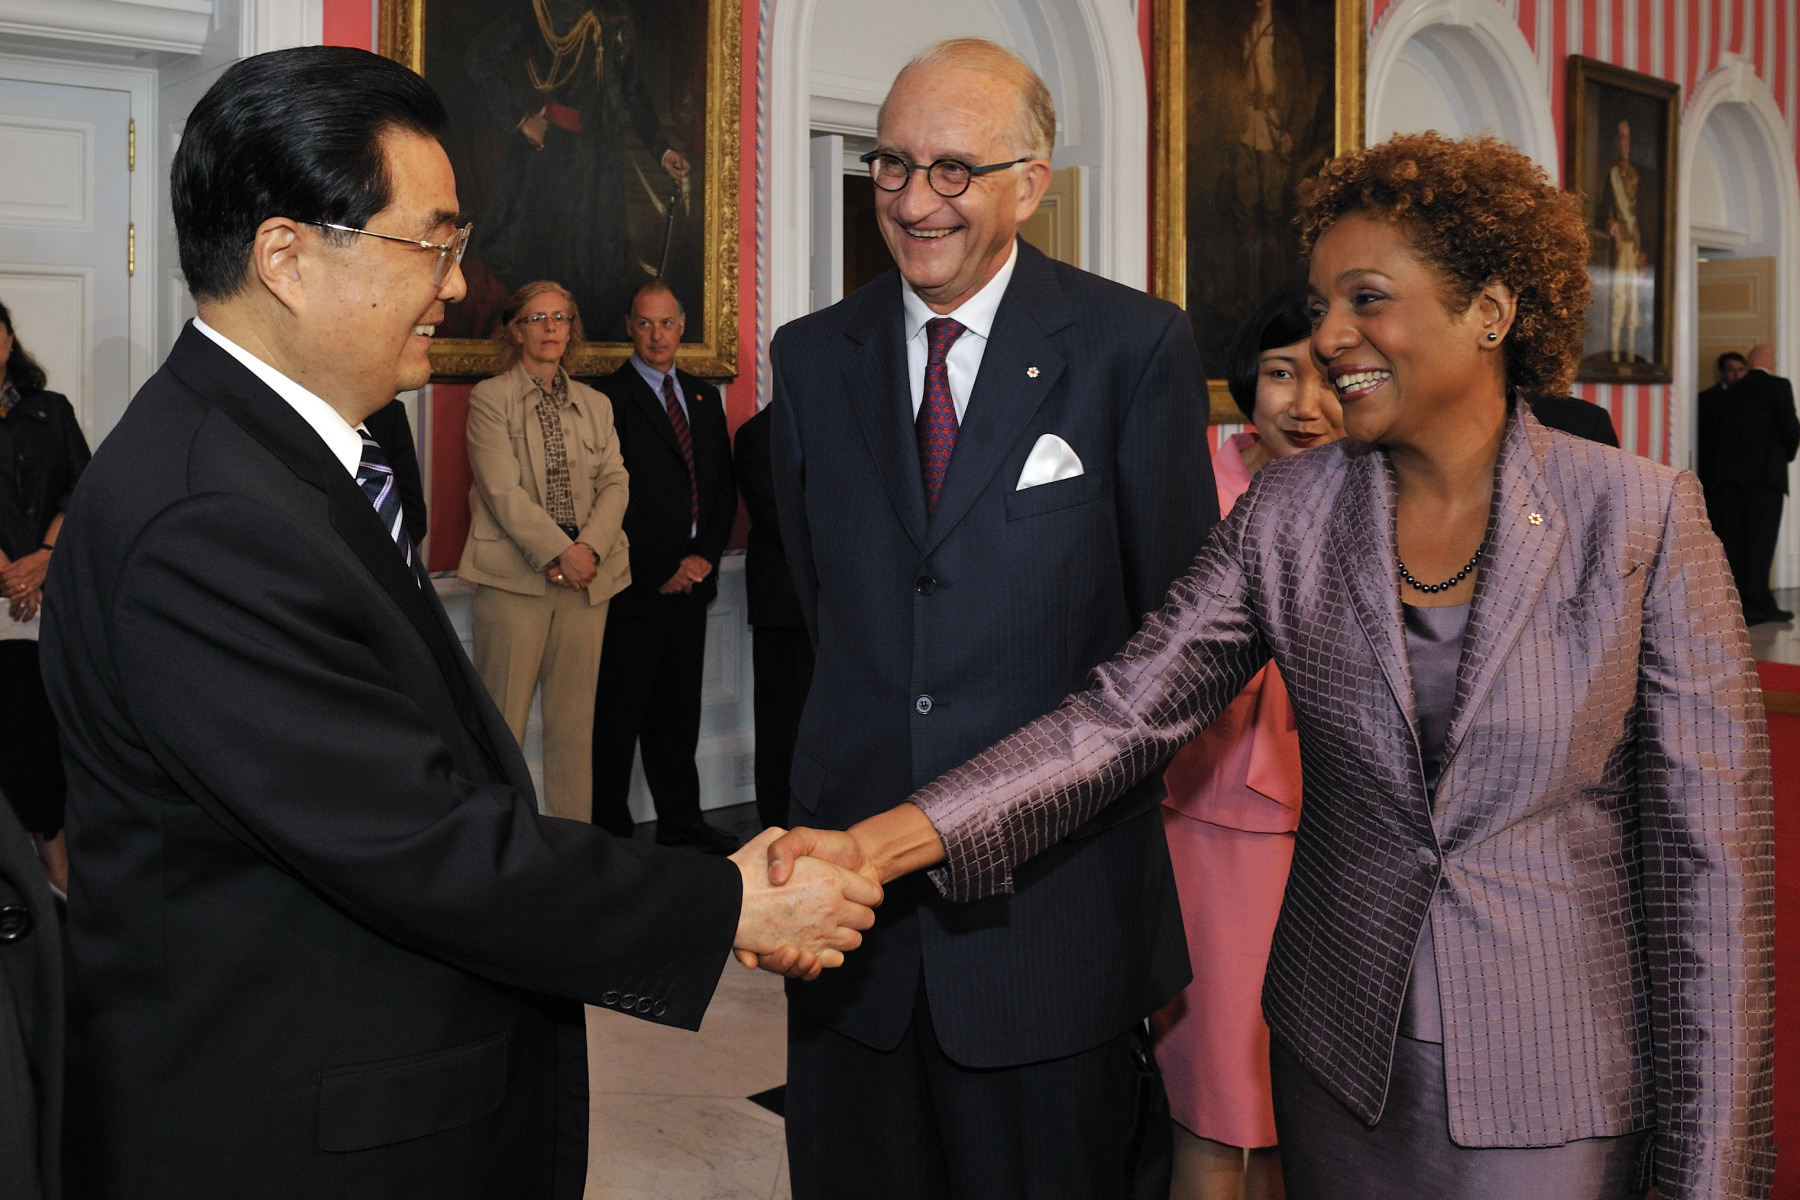 Their Excellencies the Right Honourable Michaëlle Jean, Governor General of Canada, and Mr. Jean-Daniel Lafond welcomed His Excellency Hu Jintao, President of the People's Republic of China, on the occasion of his State visit to Canada.